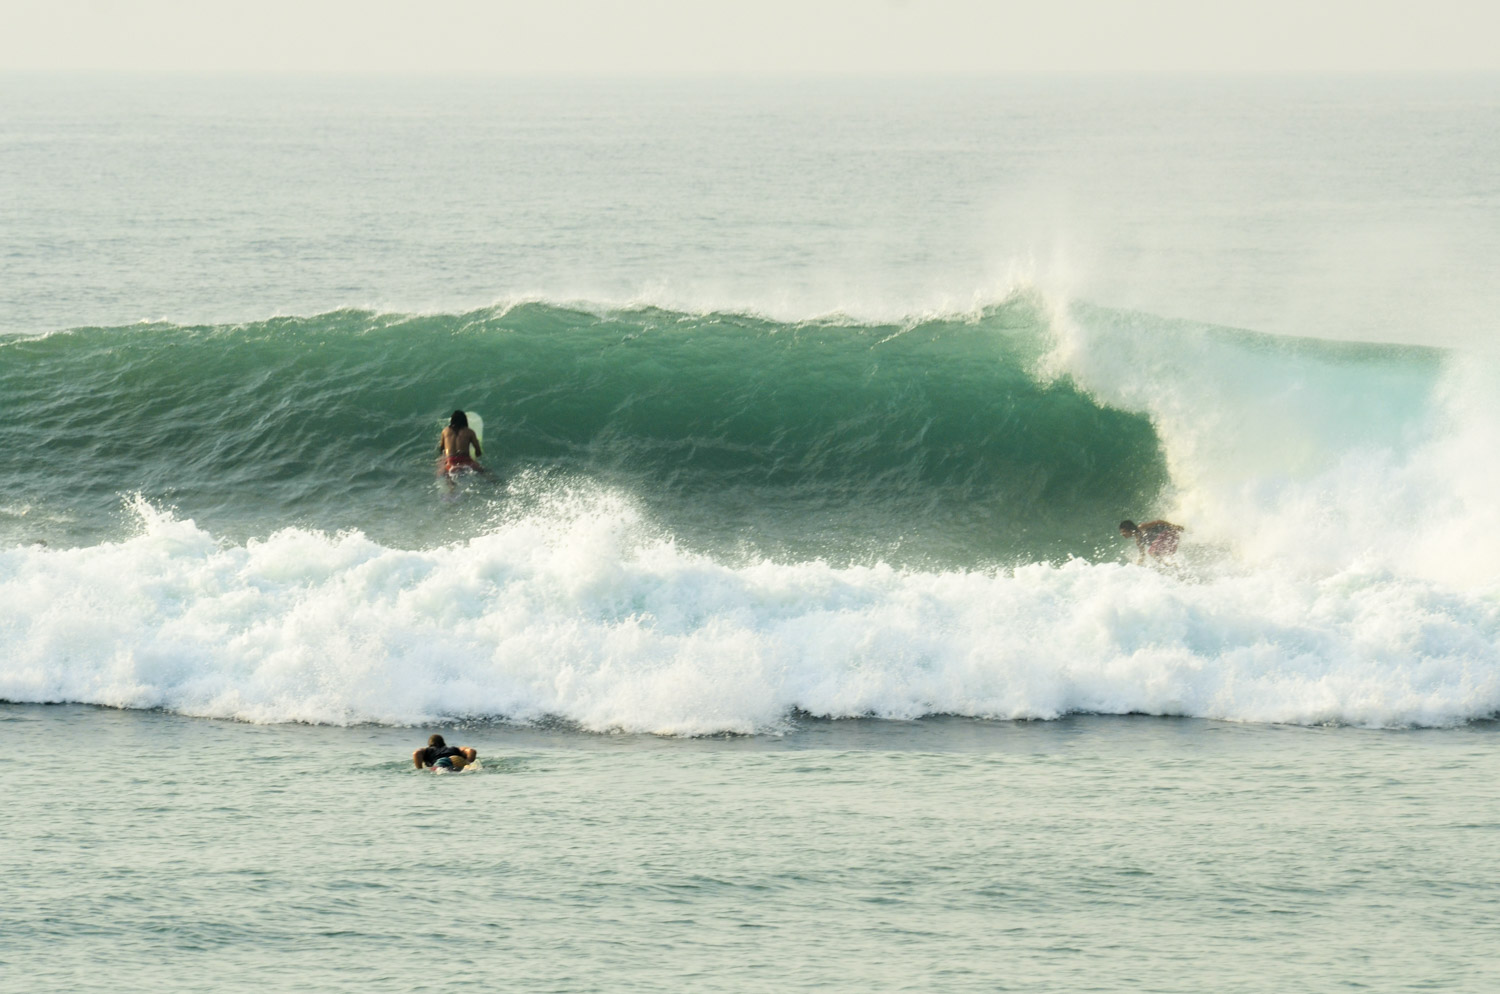 Local surfer on a late drop